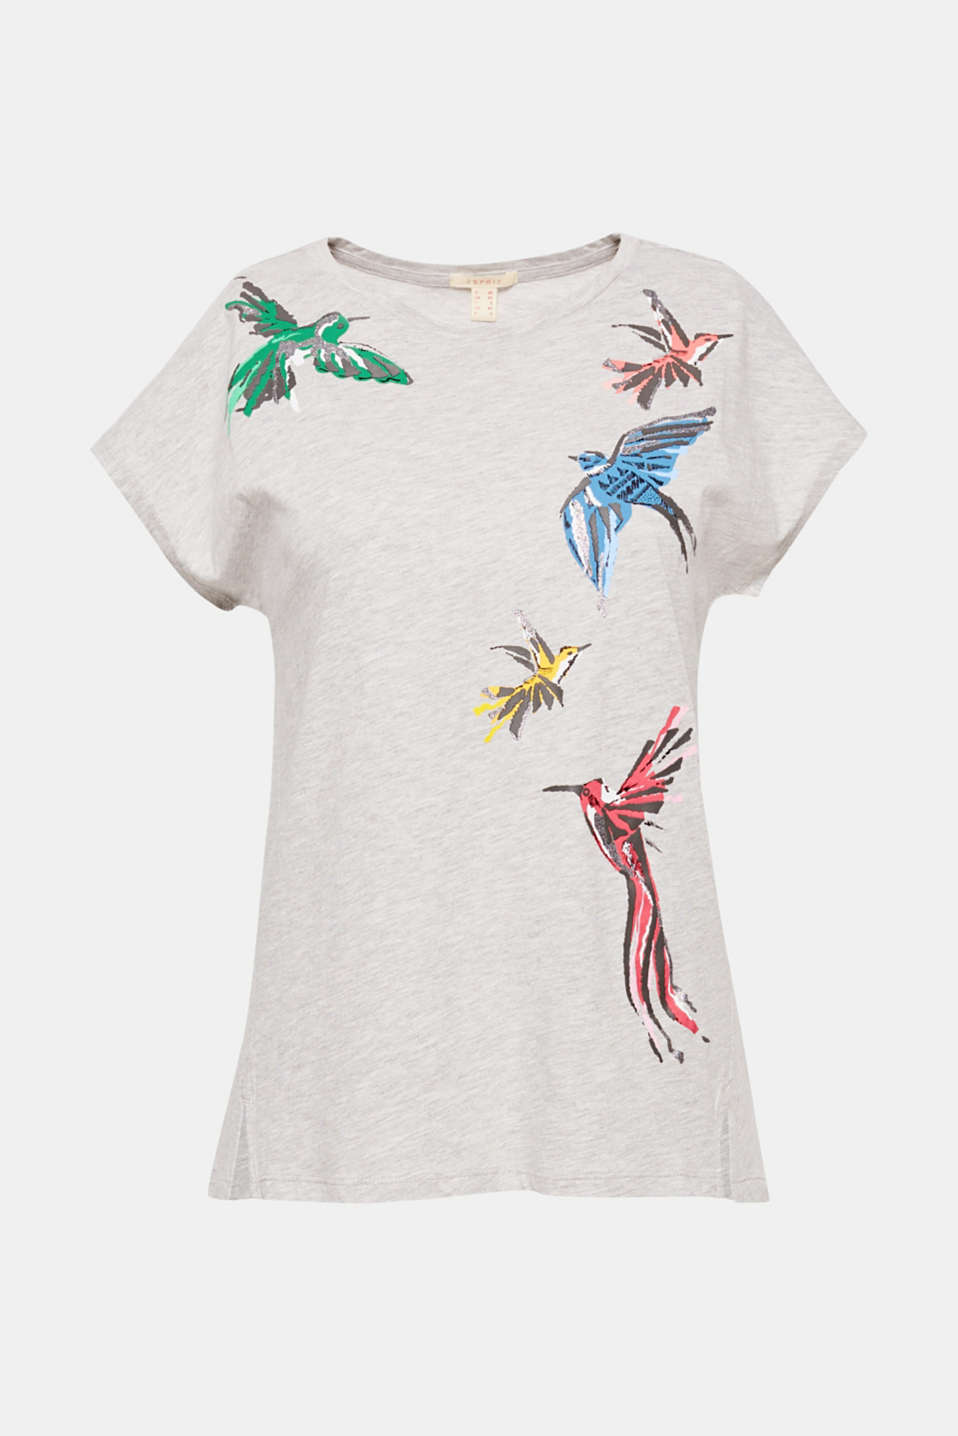 The colourful bird print with glitter makes this casual T-shirt an exciting eye-catching piece